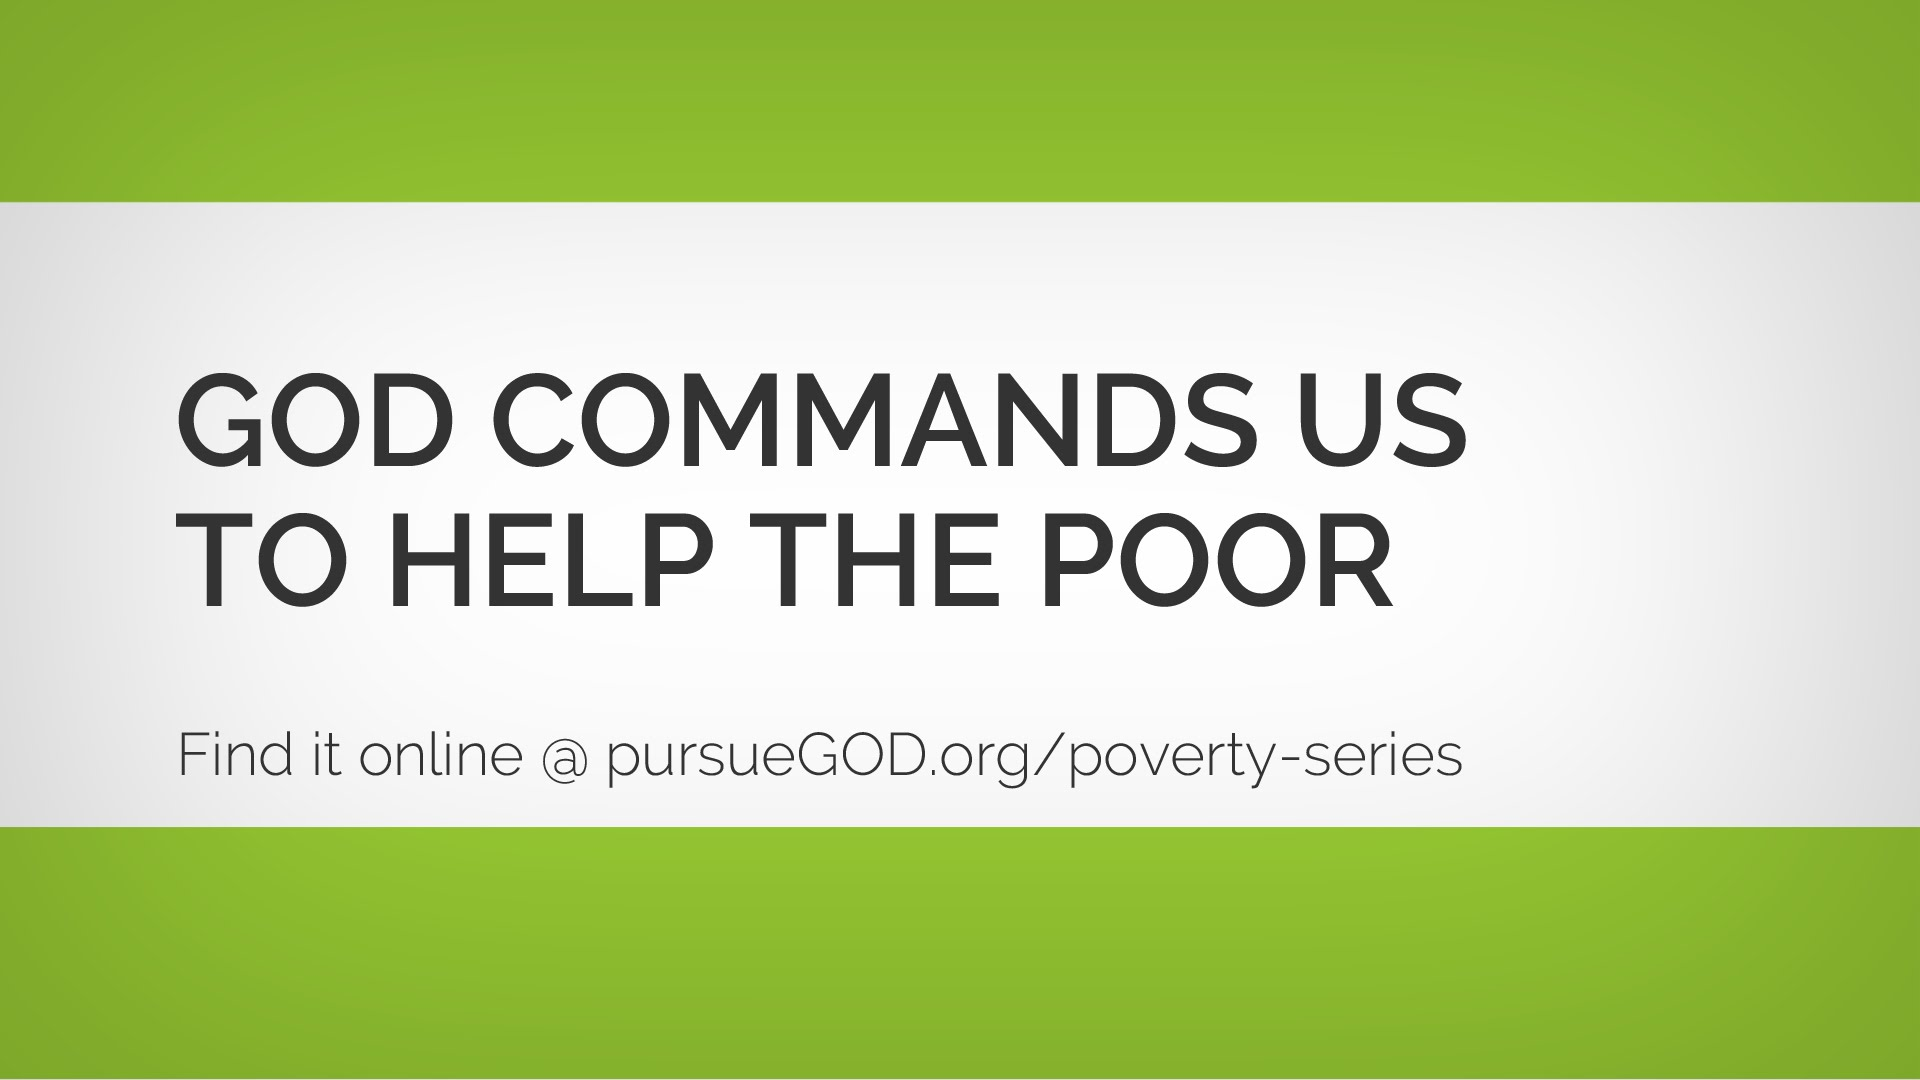 God Commands Us to Help the Poor